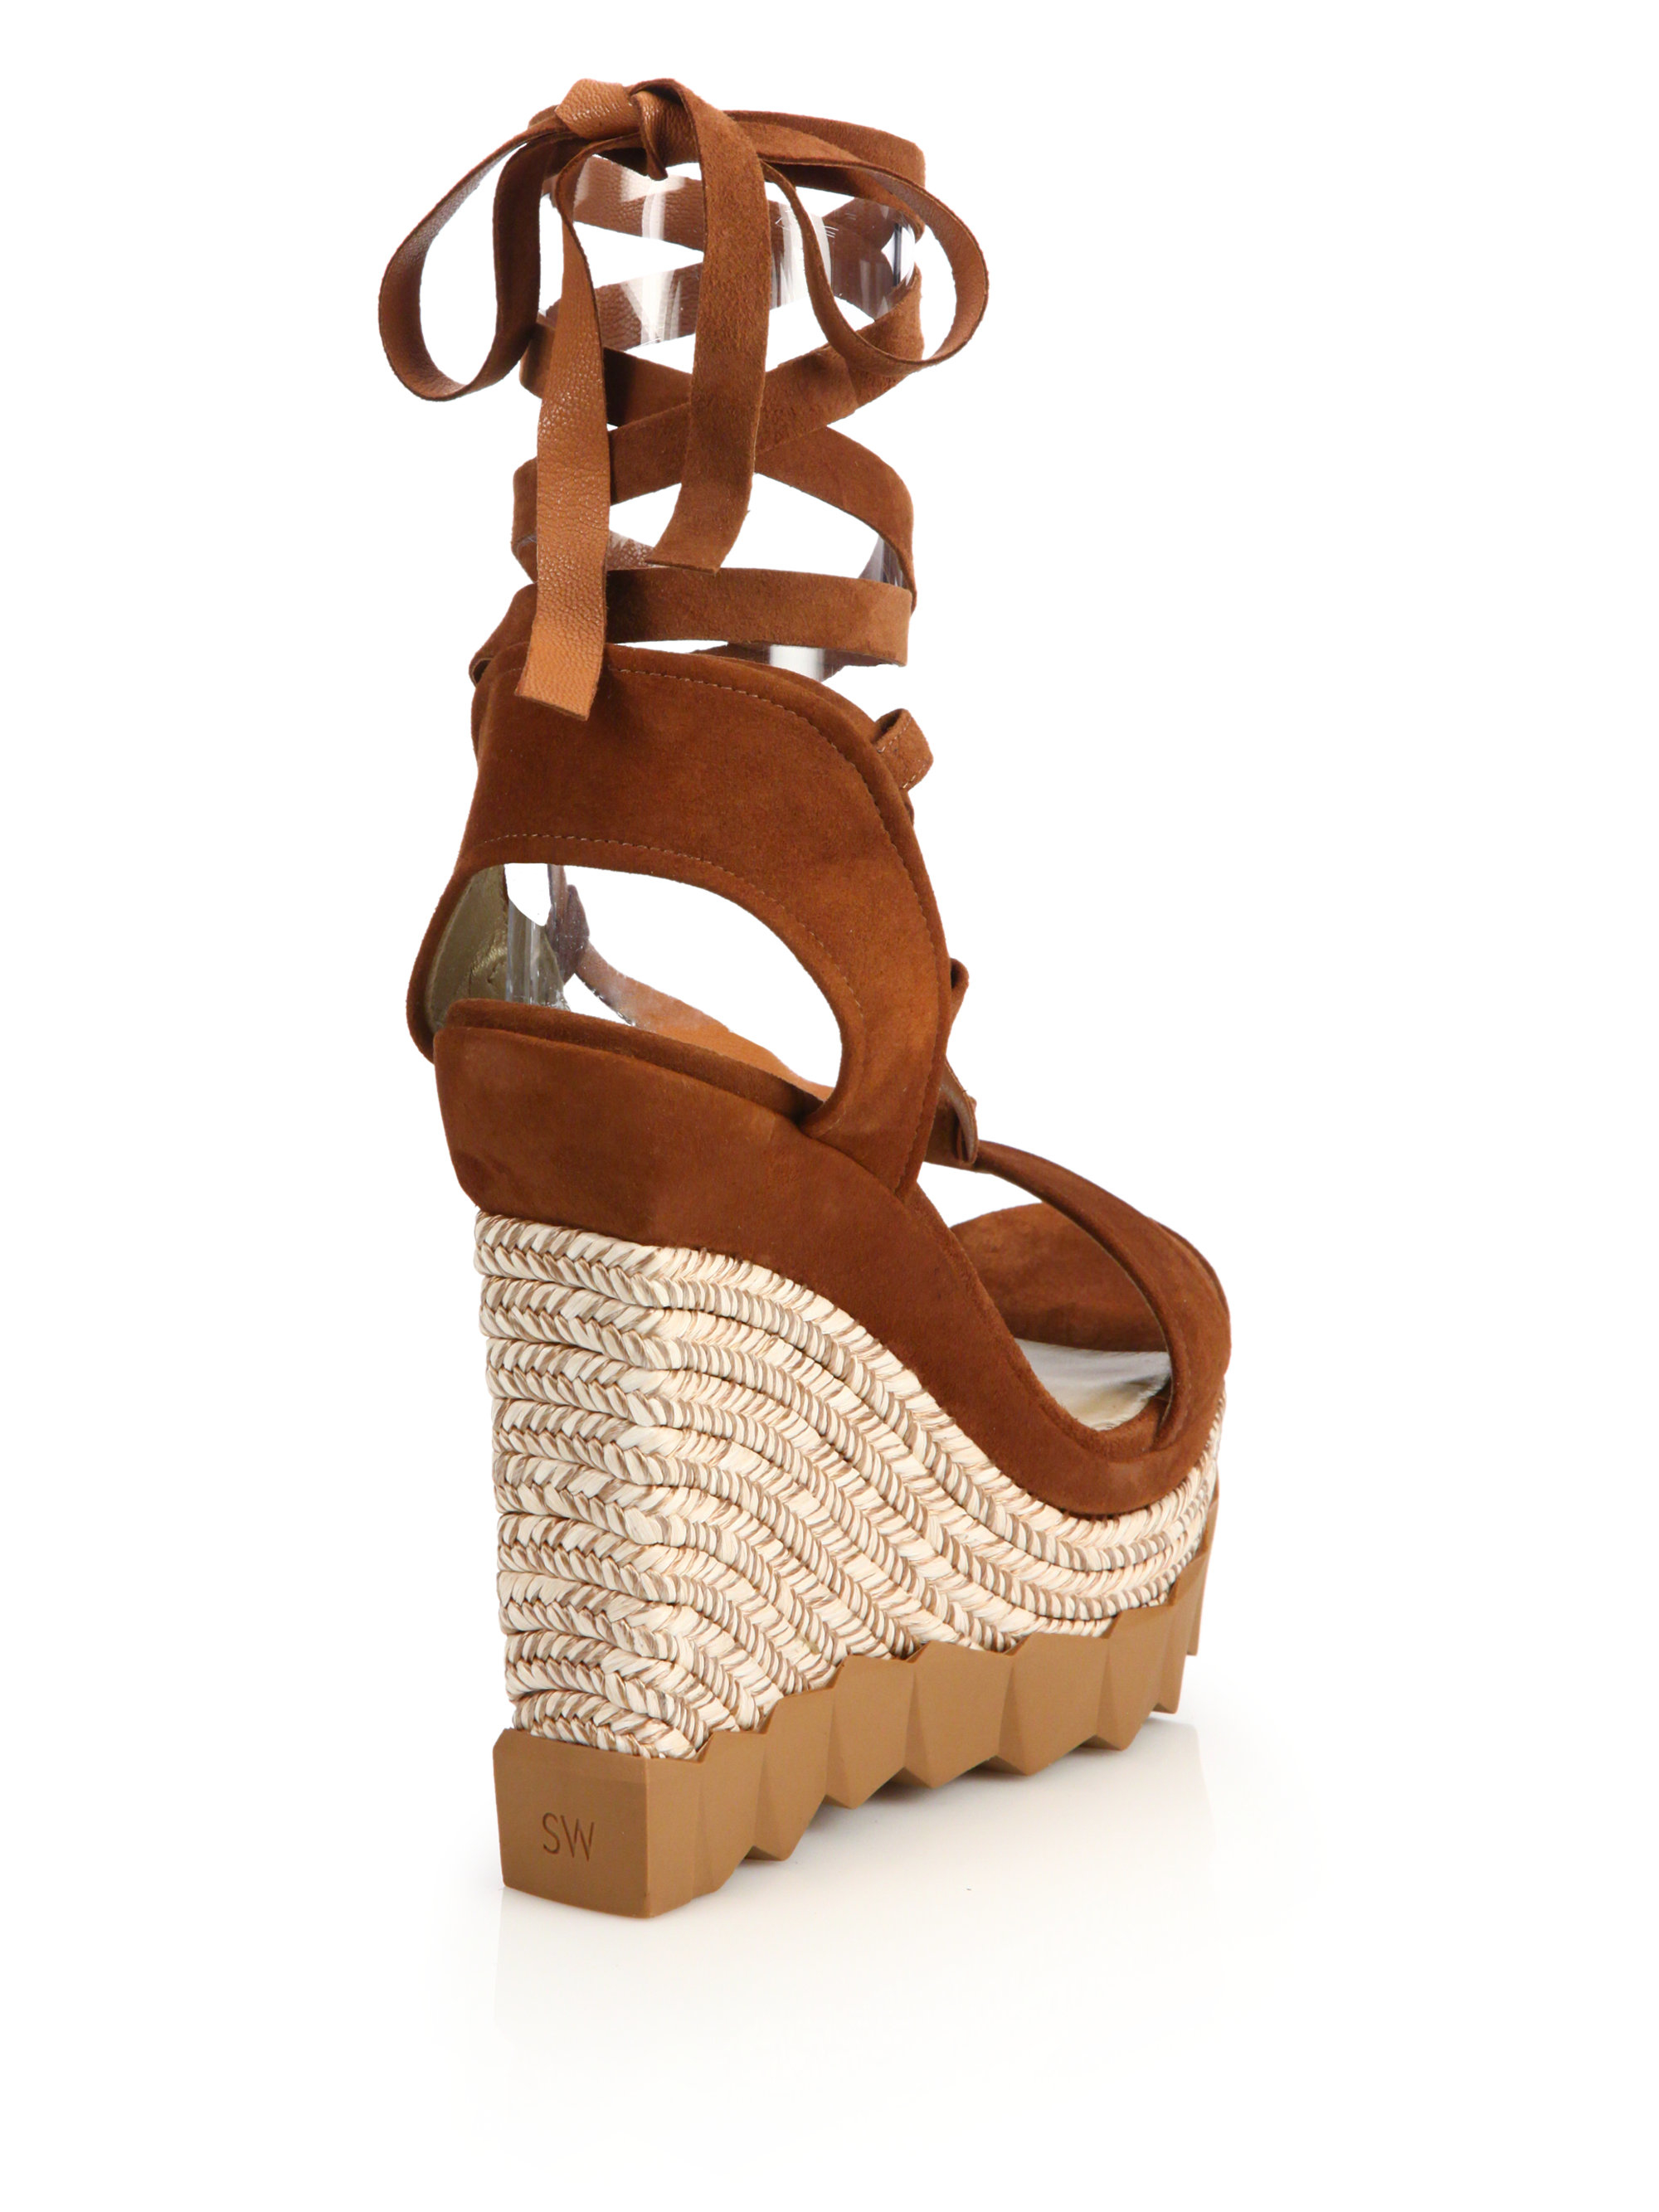 Stuart Weitzman Suede Wedge Mules release dates cheap price buy cheap geniue stockist discount new clearance choice YVnXT96l